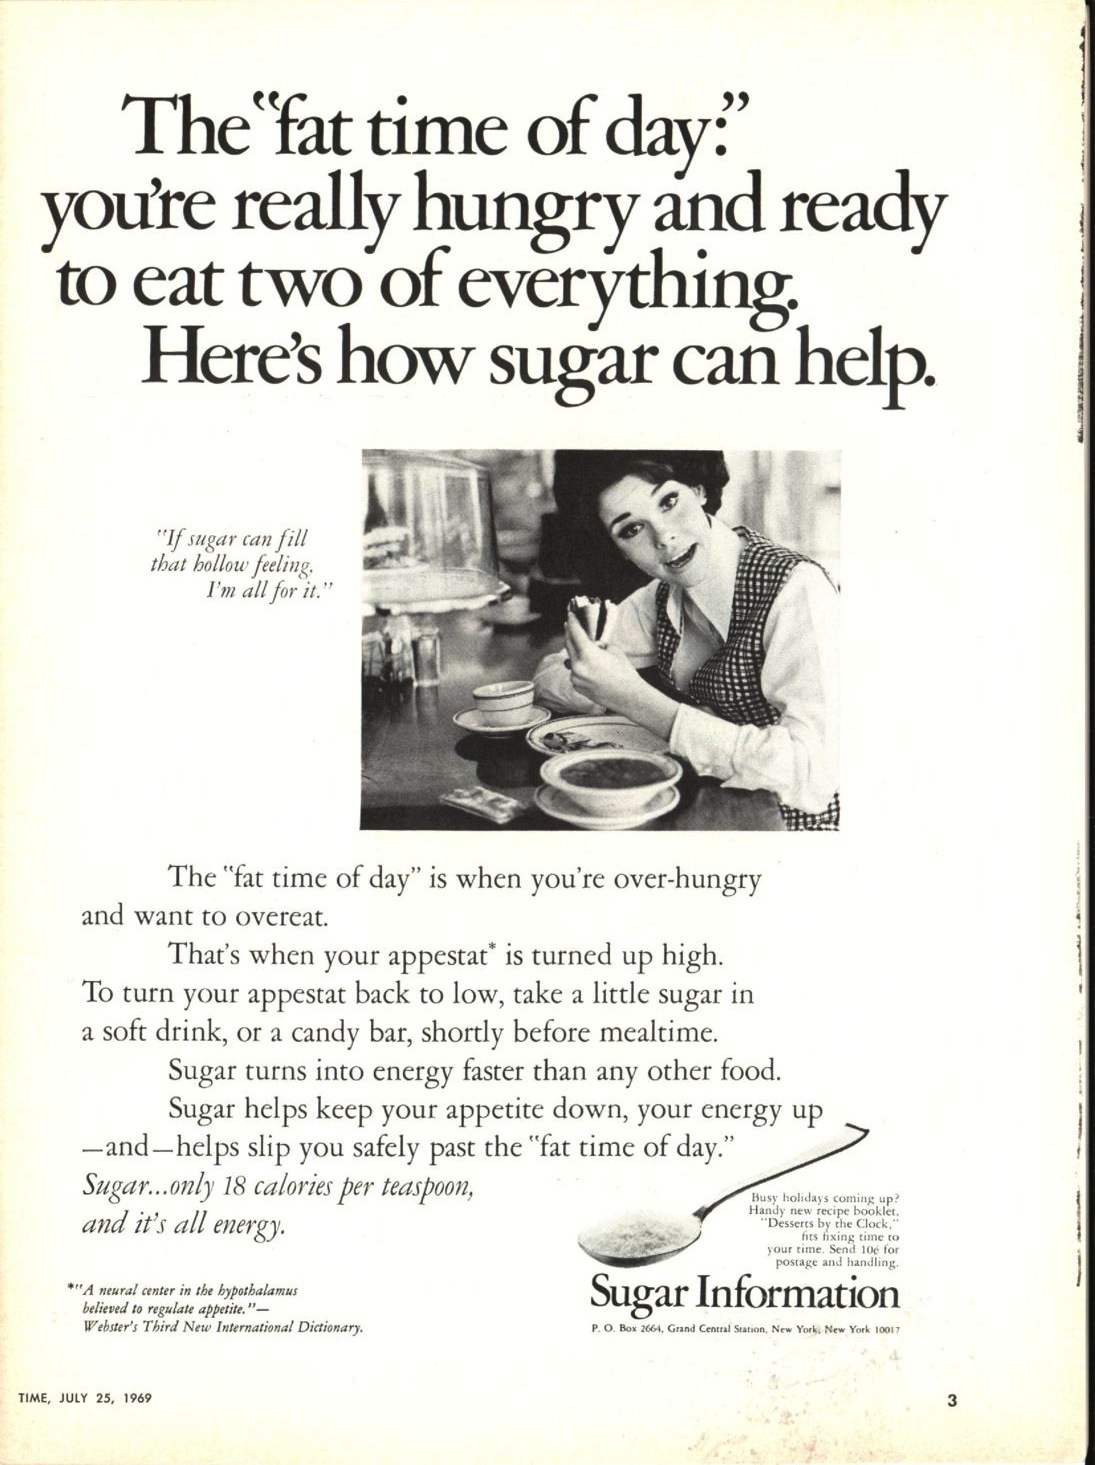 A pro-sugar ad that appeared in the July 25, 1969, issue of TIMEA little sugar before a meal— in a soft drink, or a candy bar —curbs cravings that can lead to overeating.